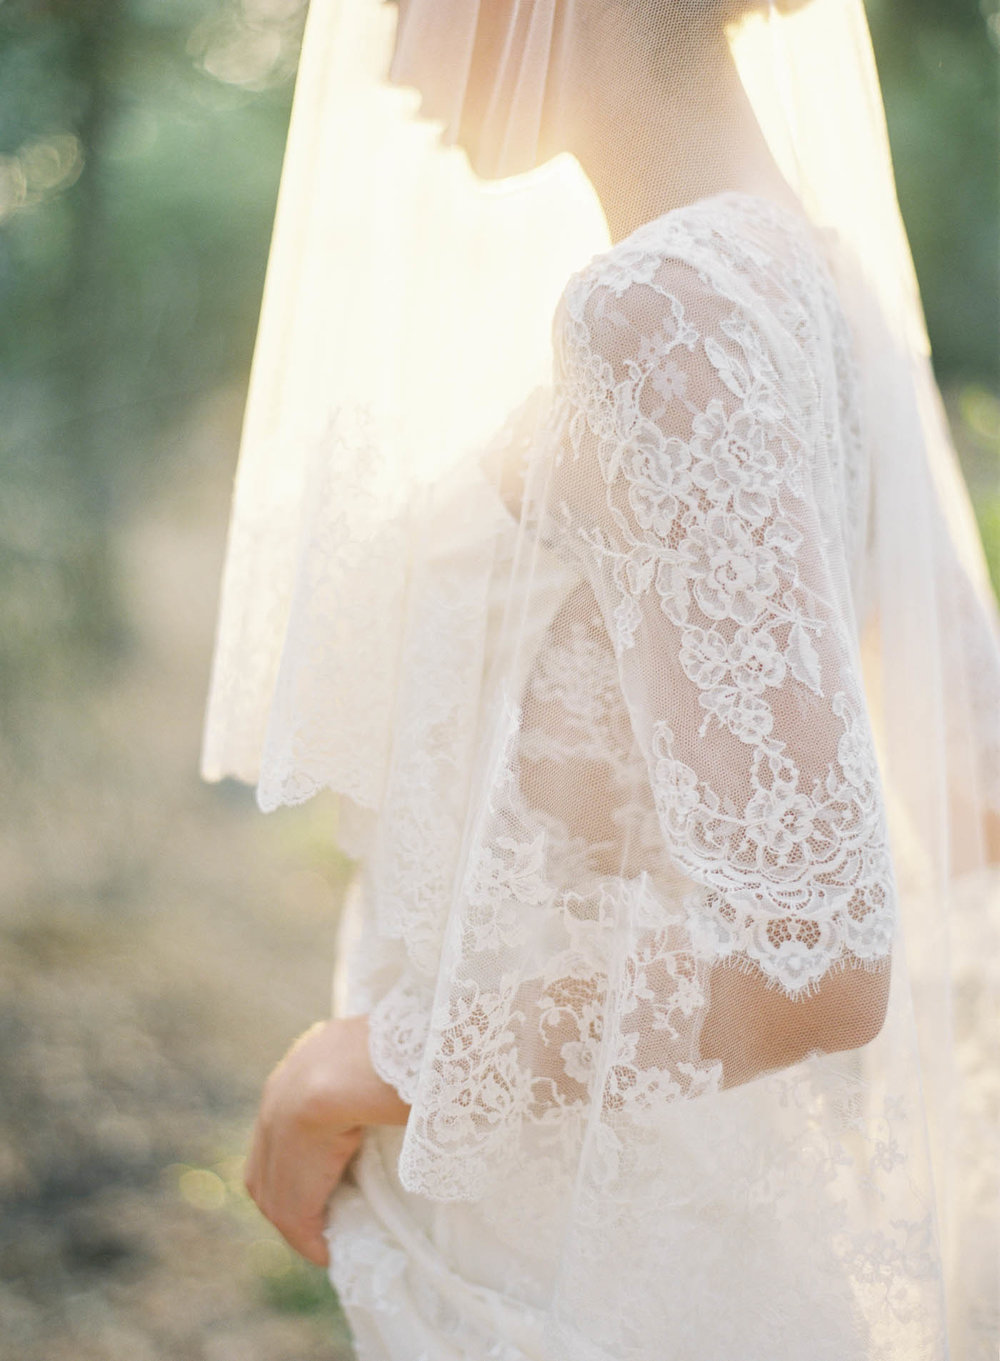 lace-sleeve-gown-4-Jen_Huang-002799-R1-012.jpg